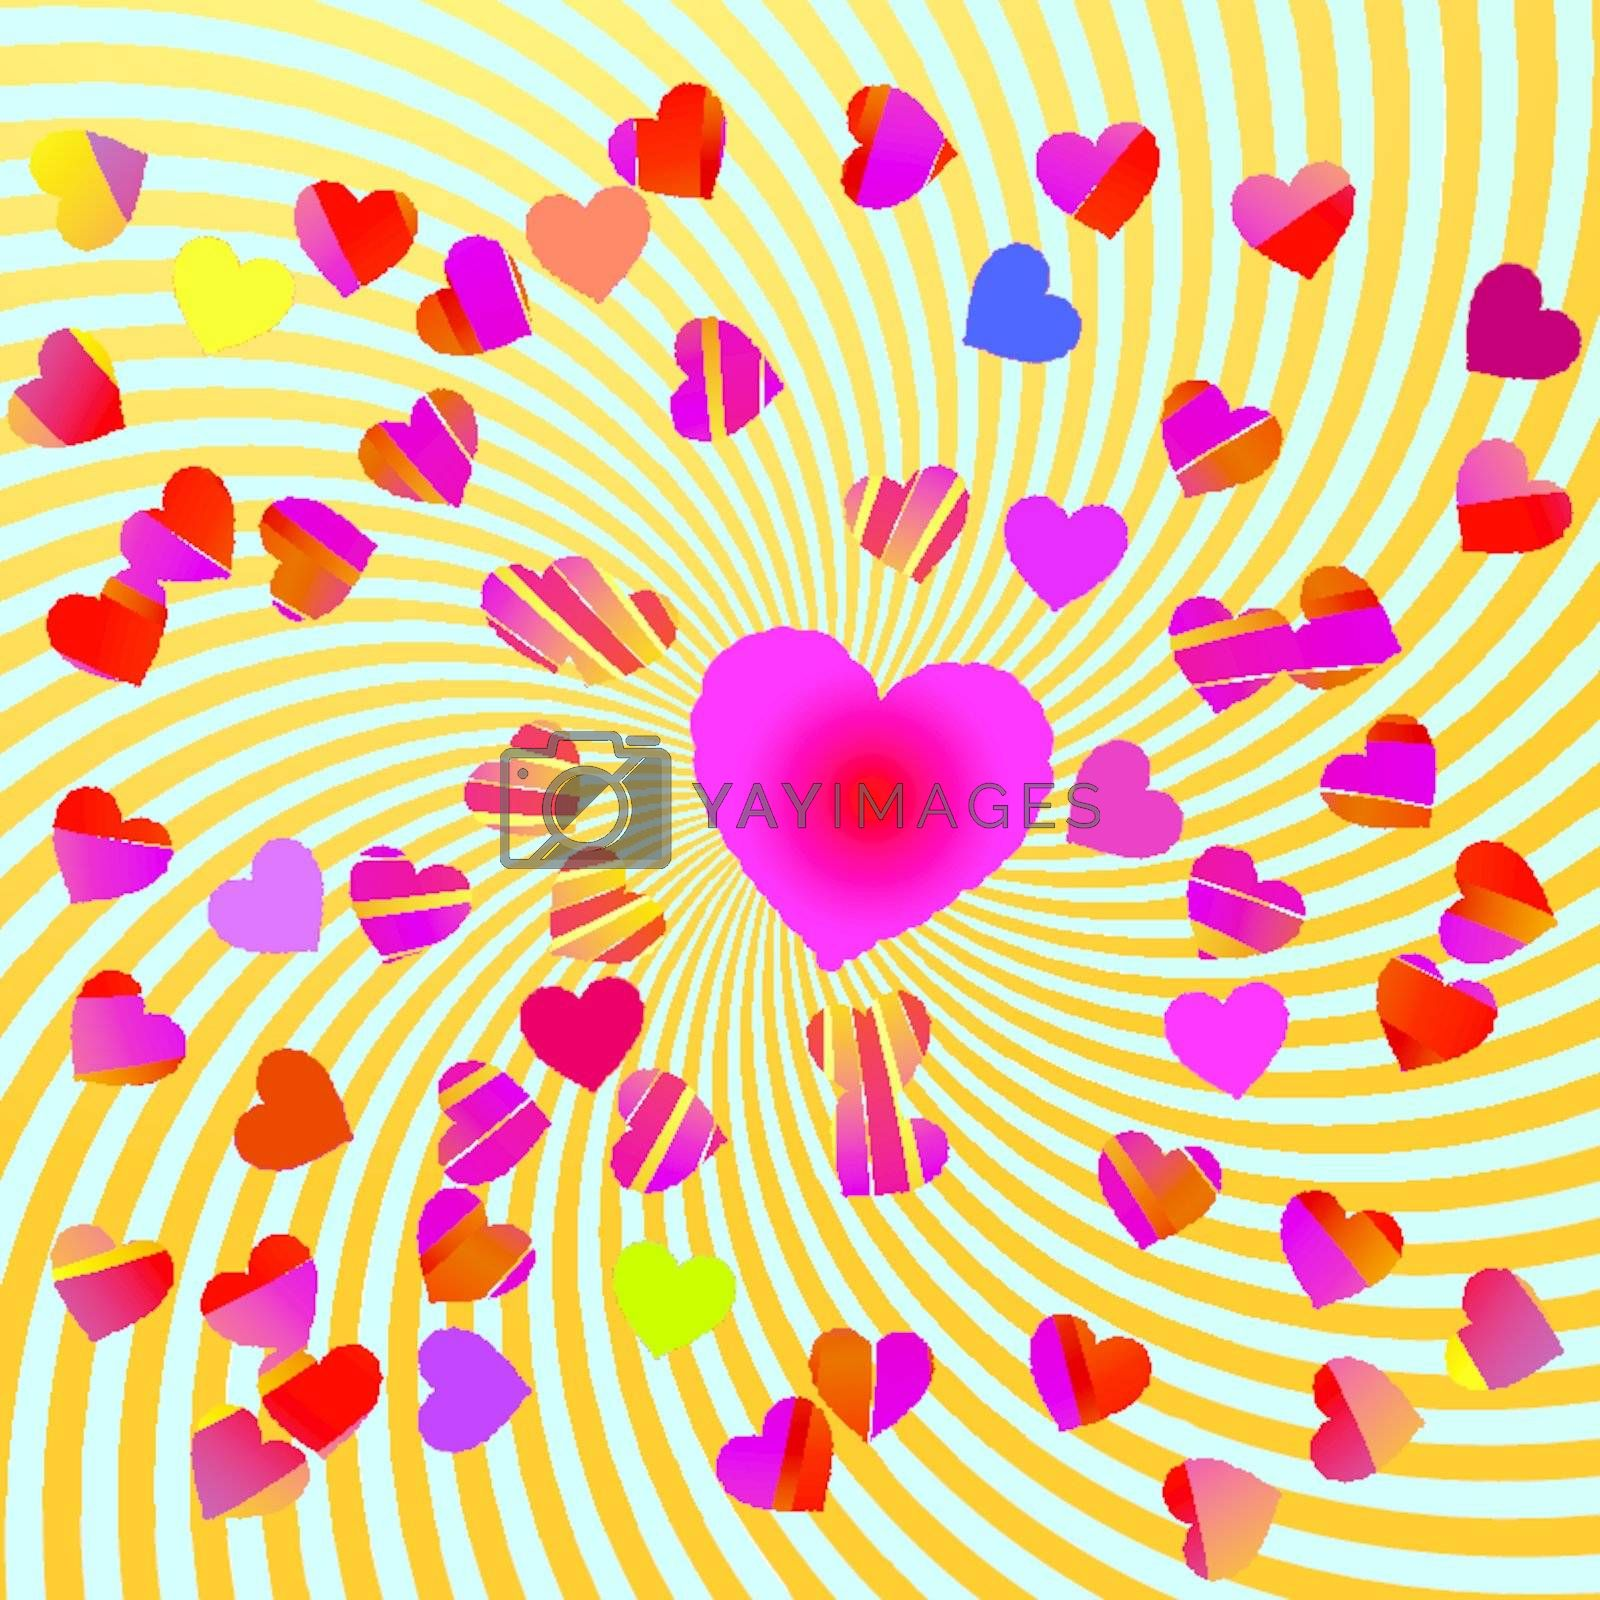 Abstract background with hearts EPS 10 vector file included